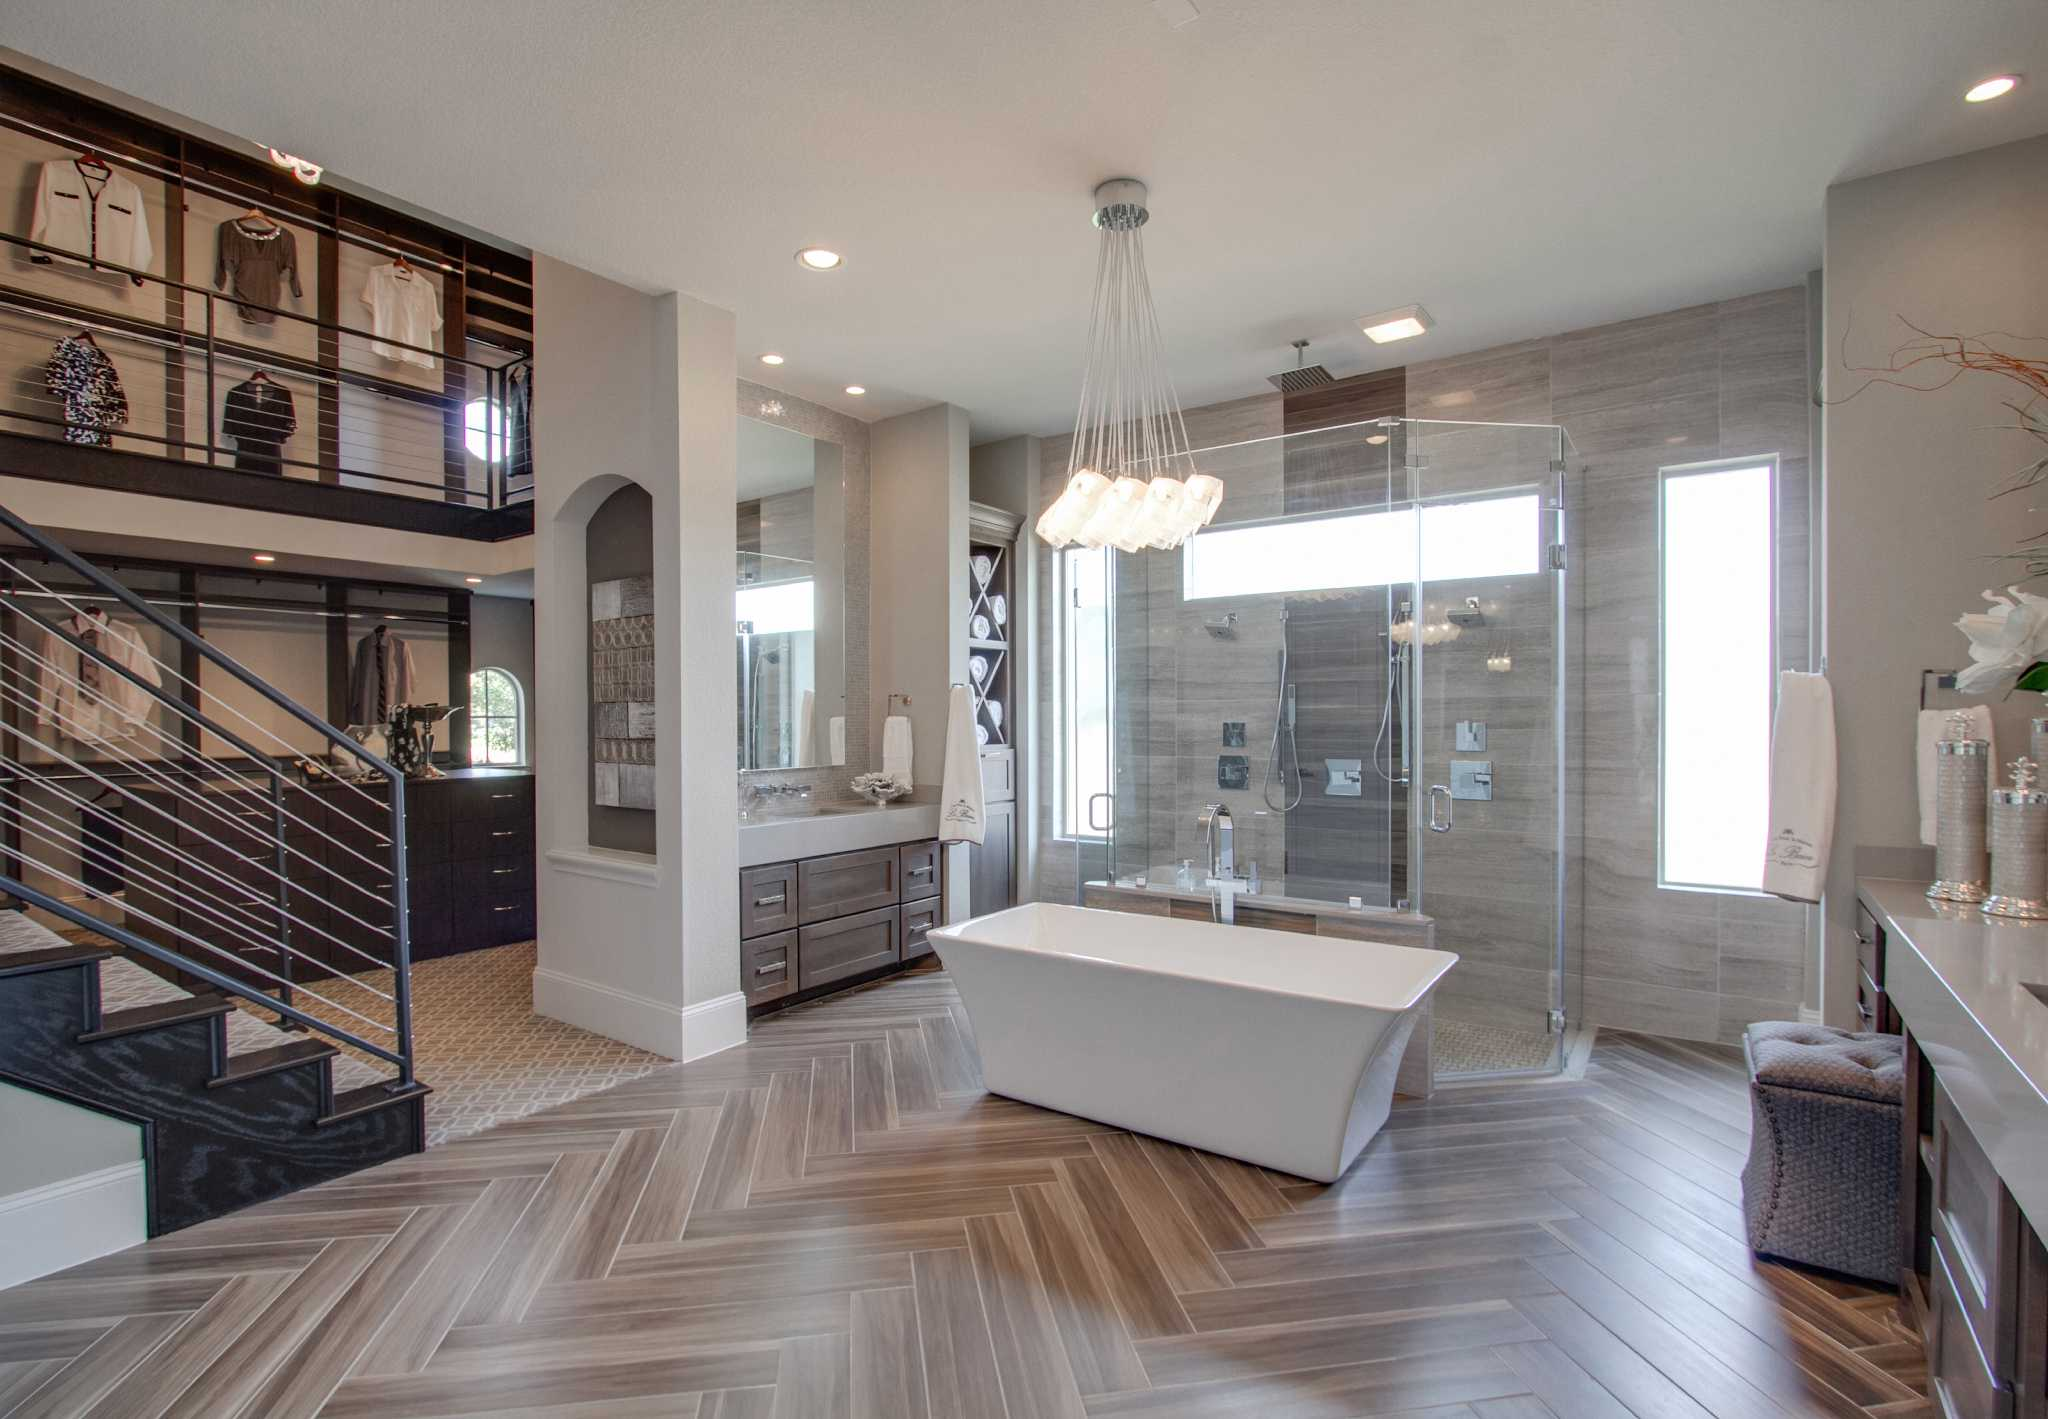 Developer S Houston S Largest Home Tour Offers New